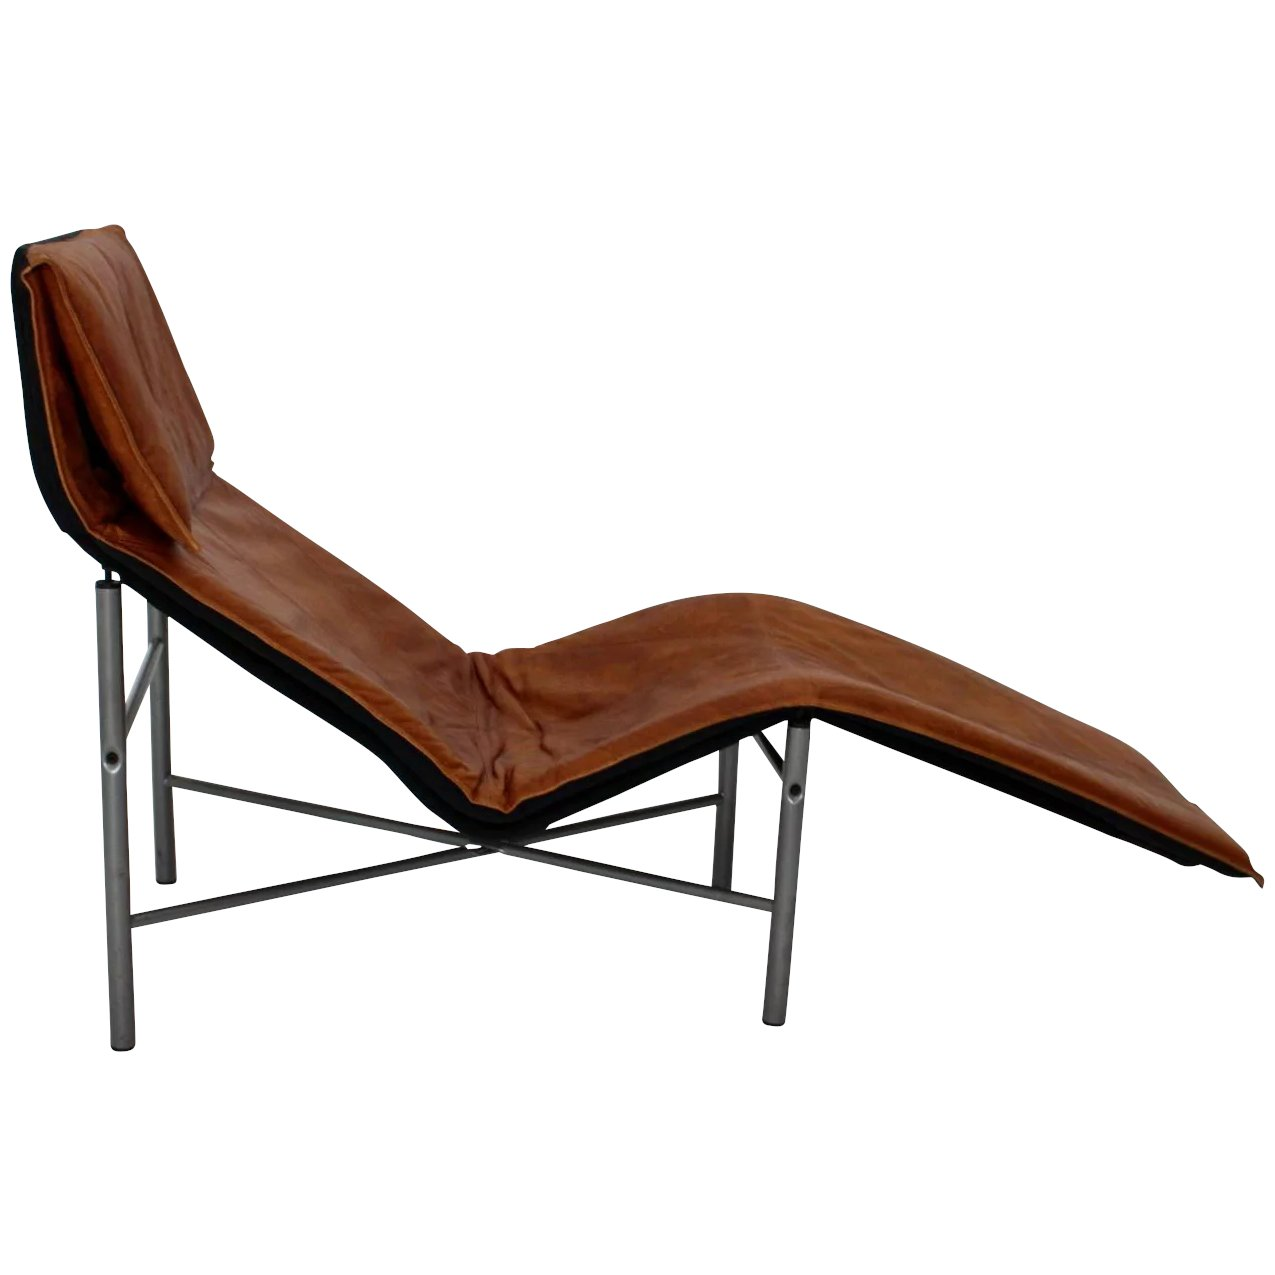 cognac leather chaise longue by tord bjorklund 1970 sweden. Black Bedroom Furniture Sets. Home Design Ideas